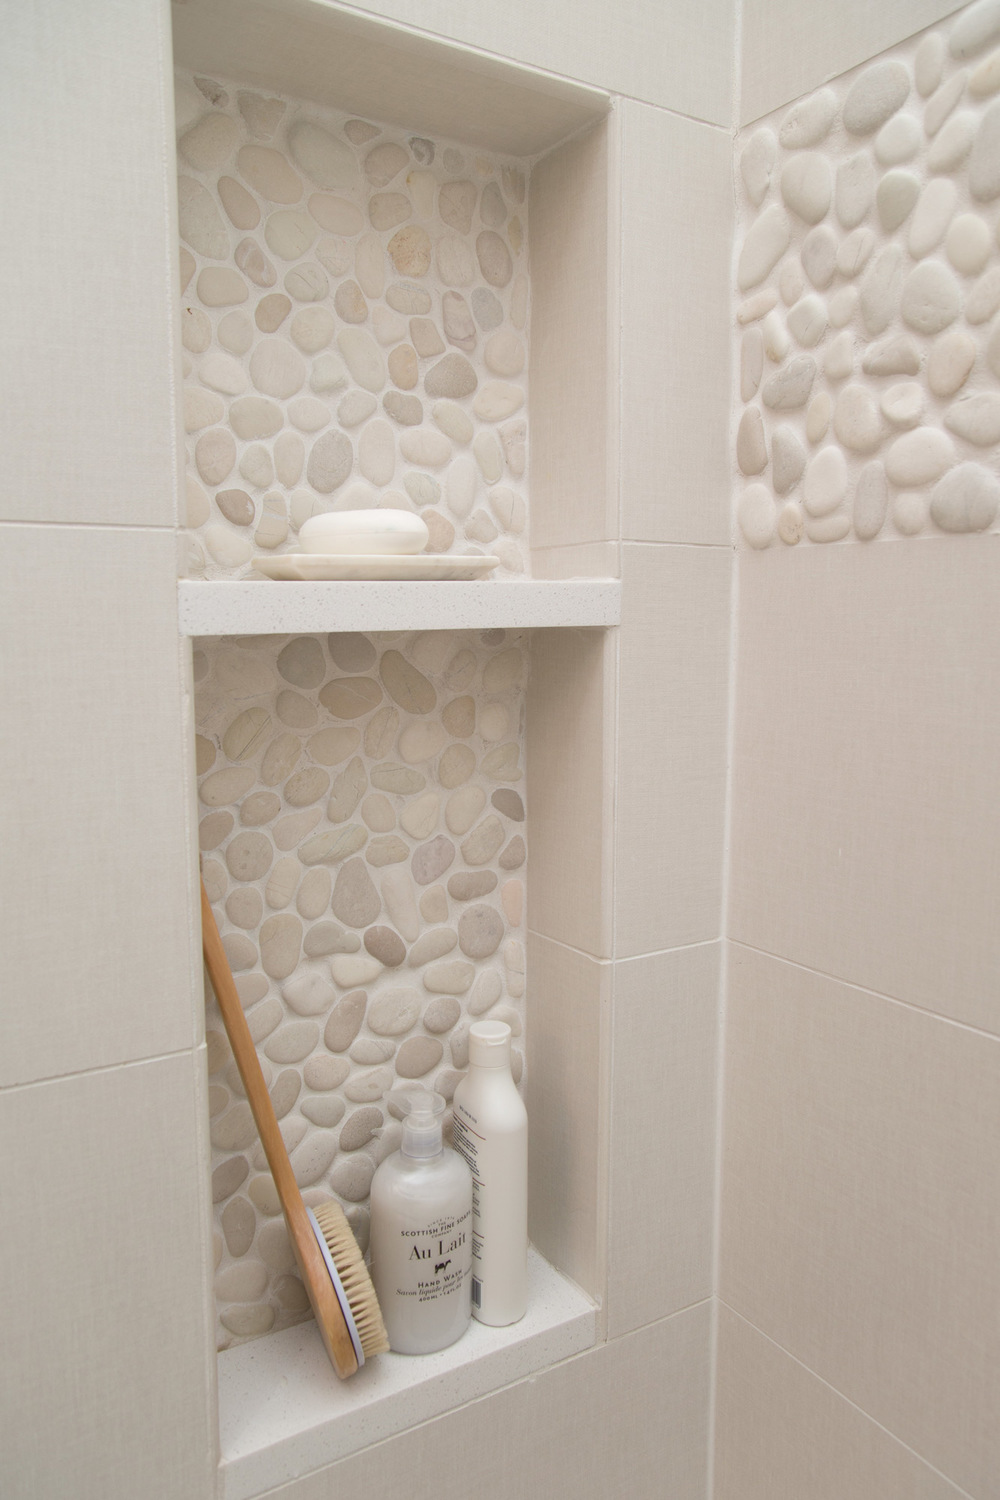 Cute Master bathroom remodel shower shampoo niche Interior Designer Carla Aston Photographer